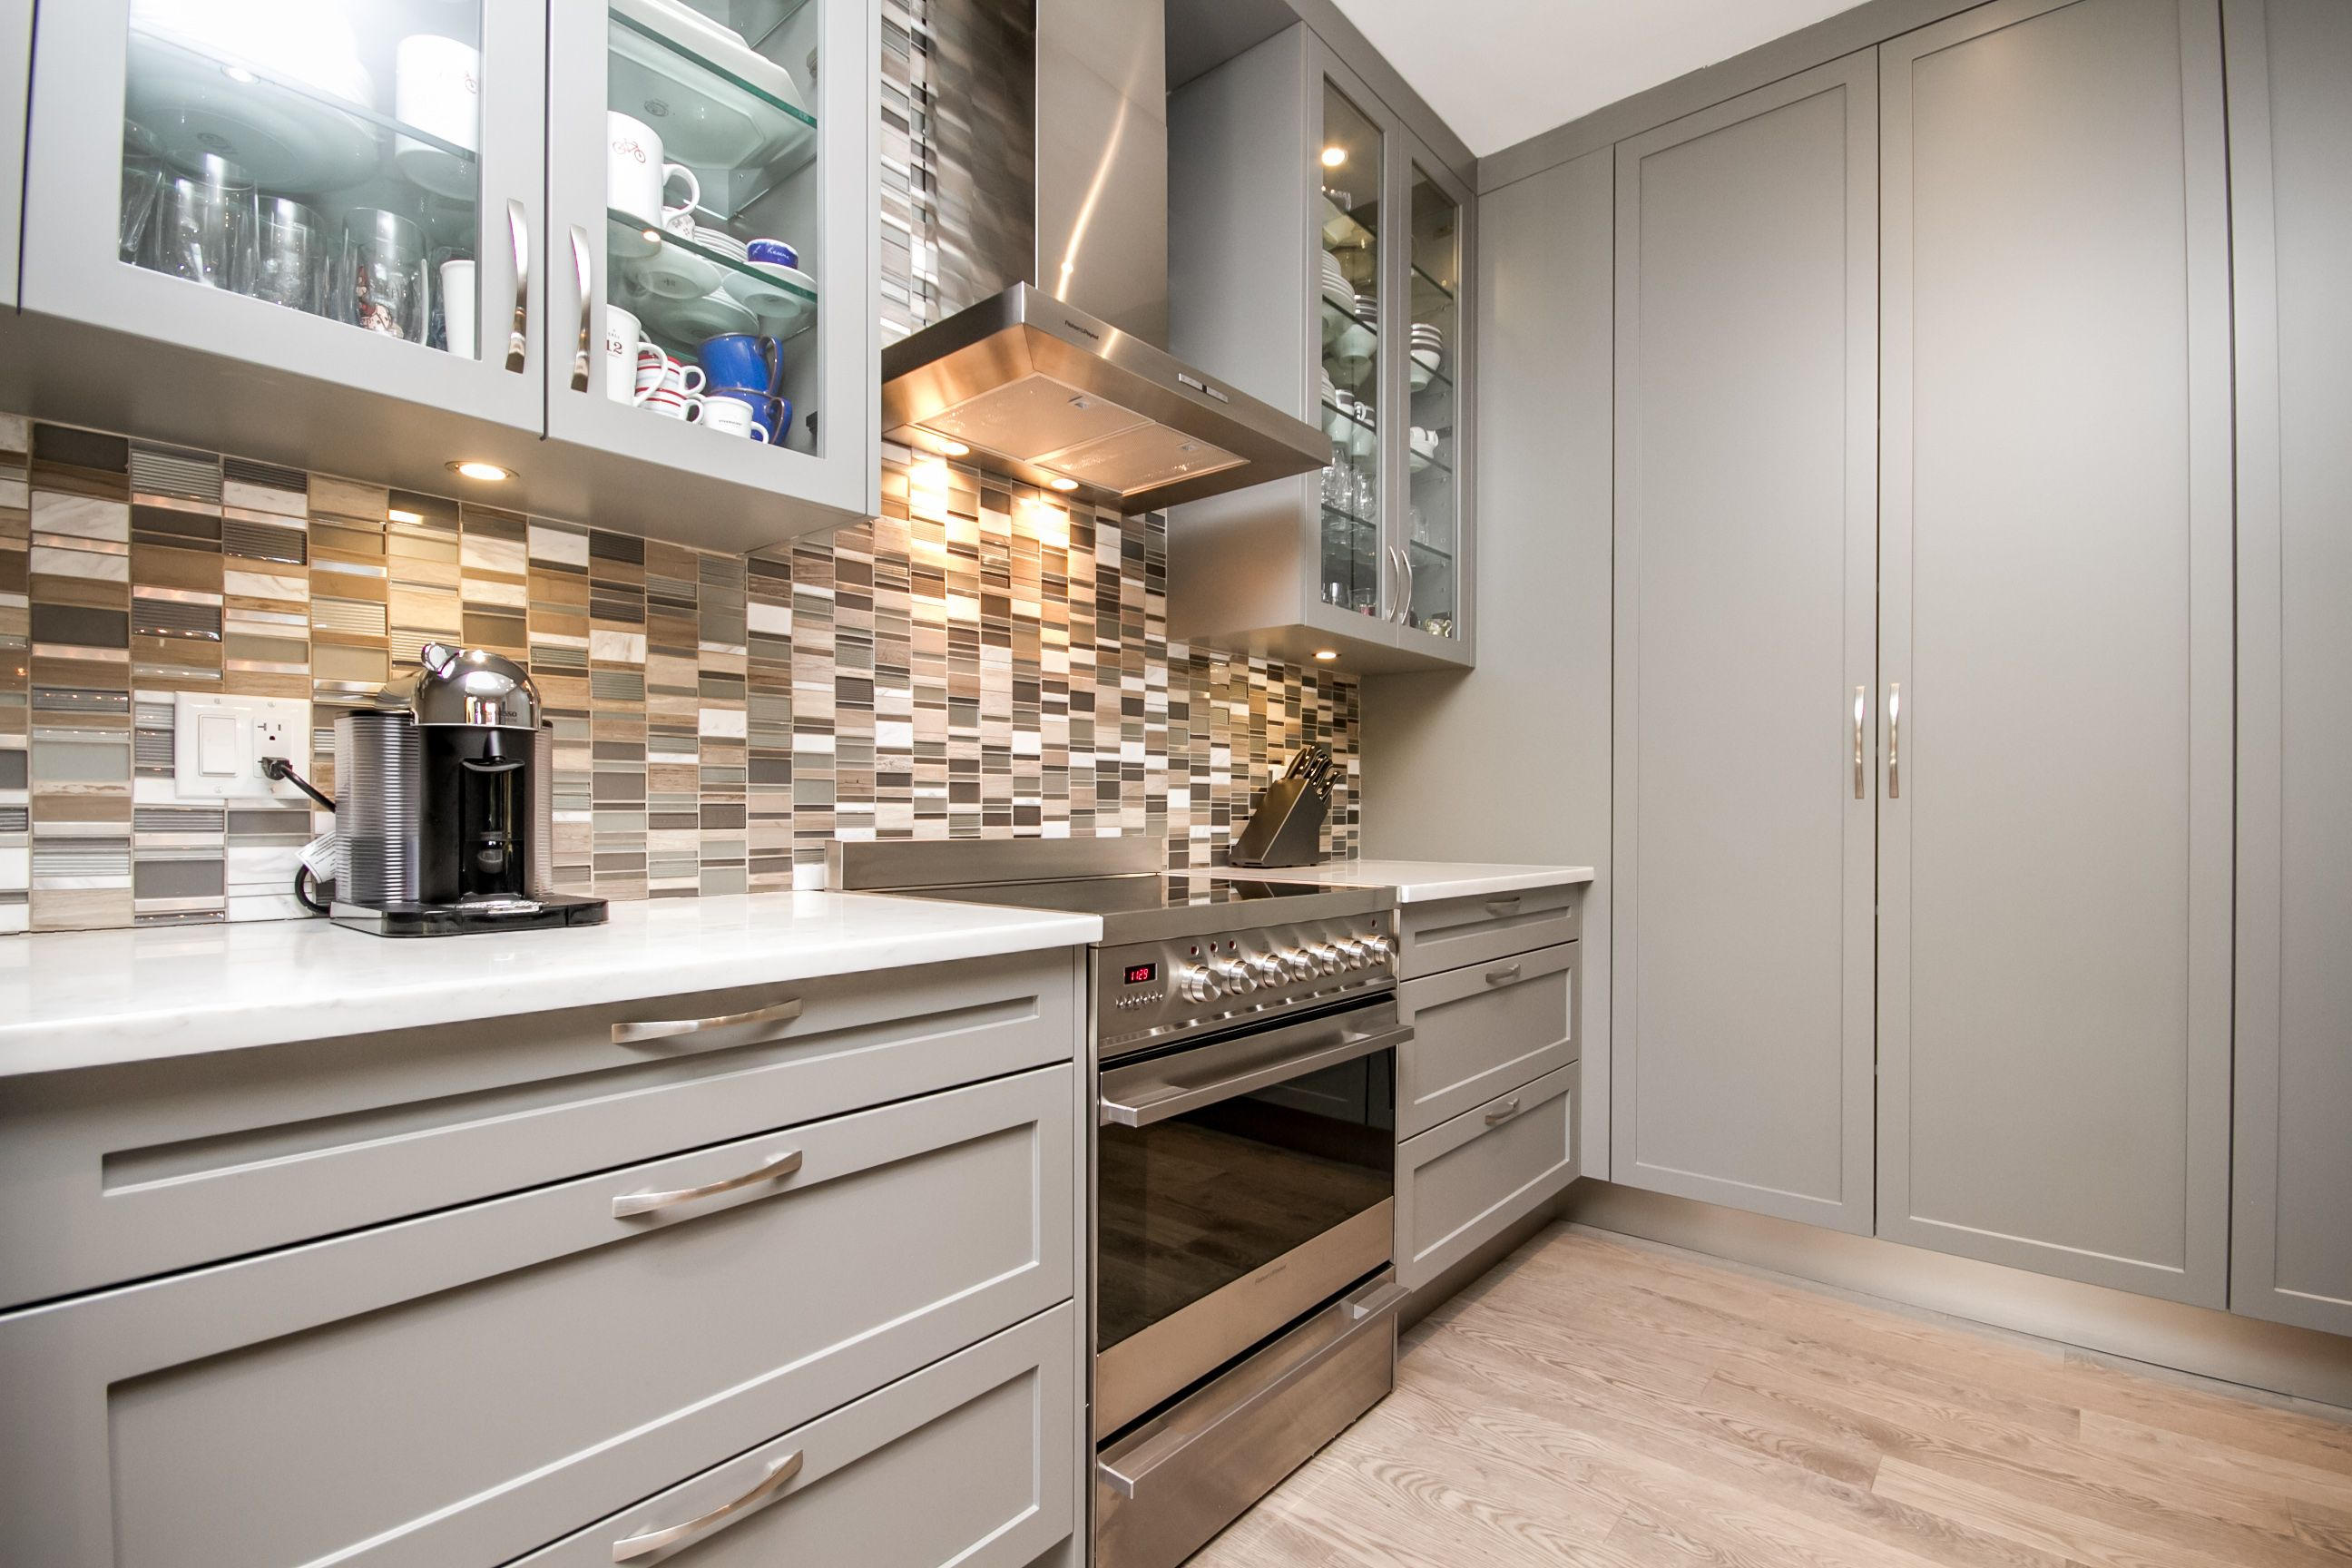 Bespoke kitchen cabinetry | Bespoke kitchens, Kitchen ...